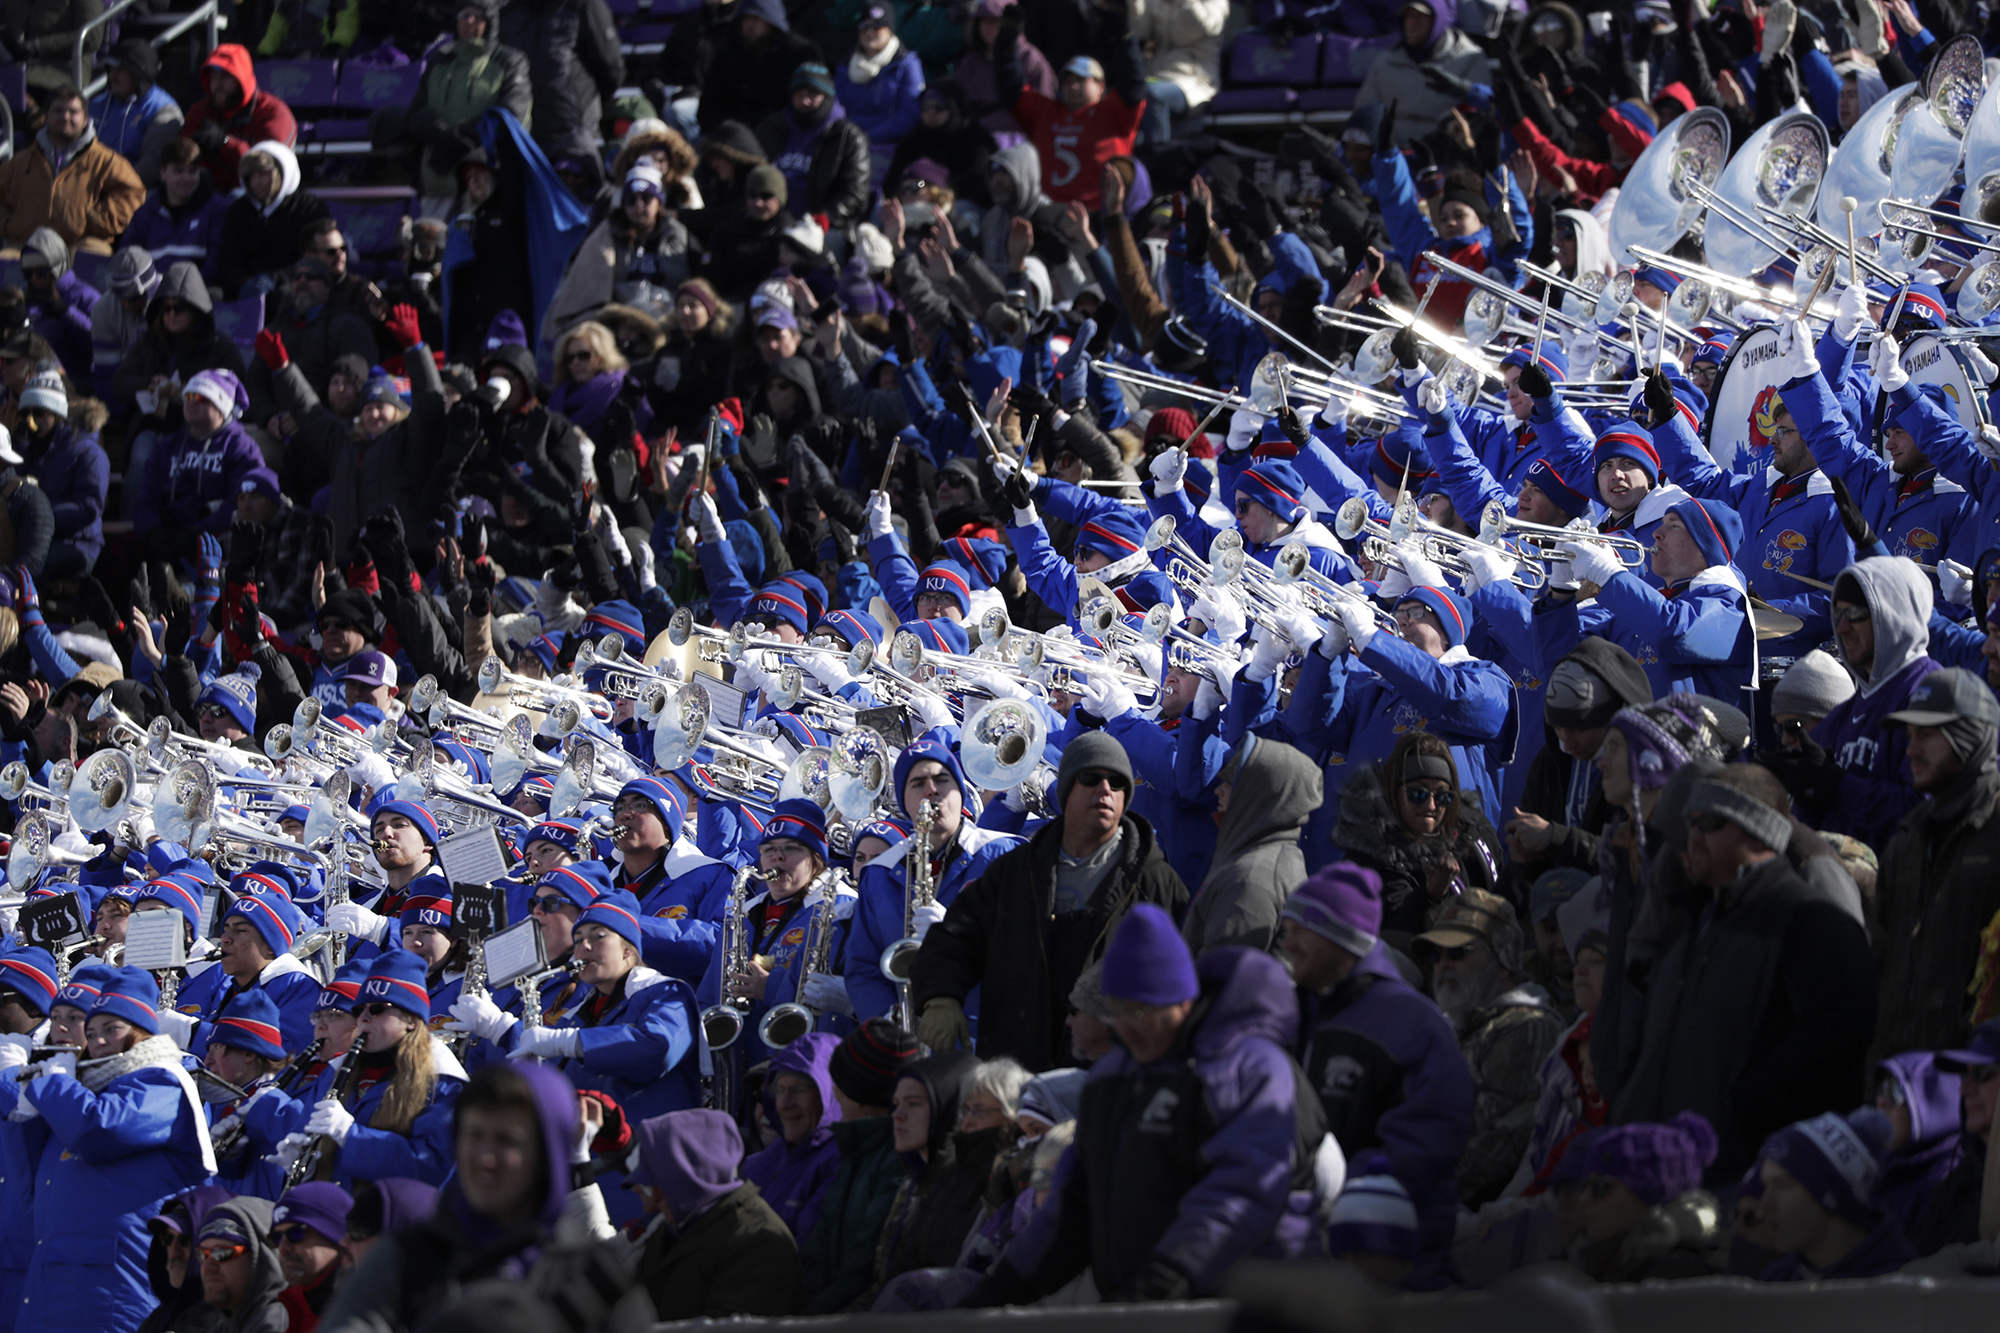 SWATH – In the midst of blue and purple-clad fans, a swath of brightly chromed instruments held by white-gloved members of the Kansas Marching Jayhawks stood out in the late afternoon sun as KU and Kansas State battled in the Dillons Sunflower Showdown inside Bill Snyder Family Stadium in Manhattan, Kansas on Saturday, November 10.